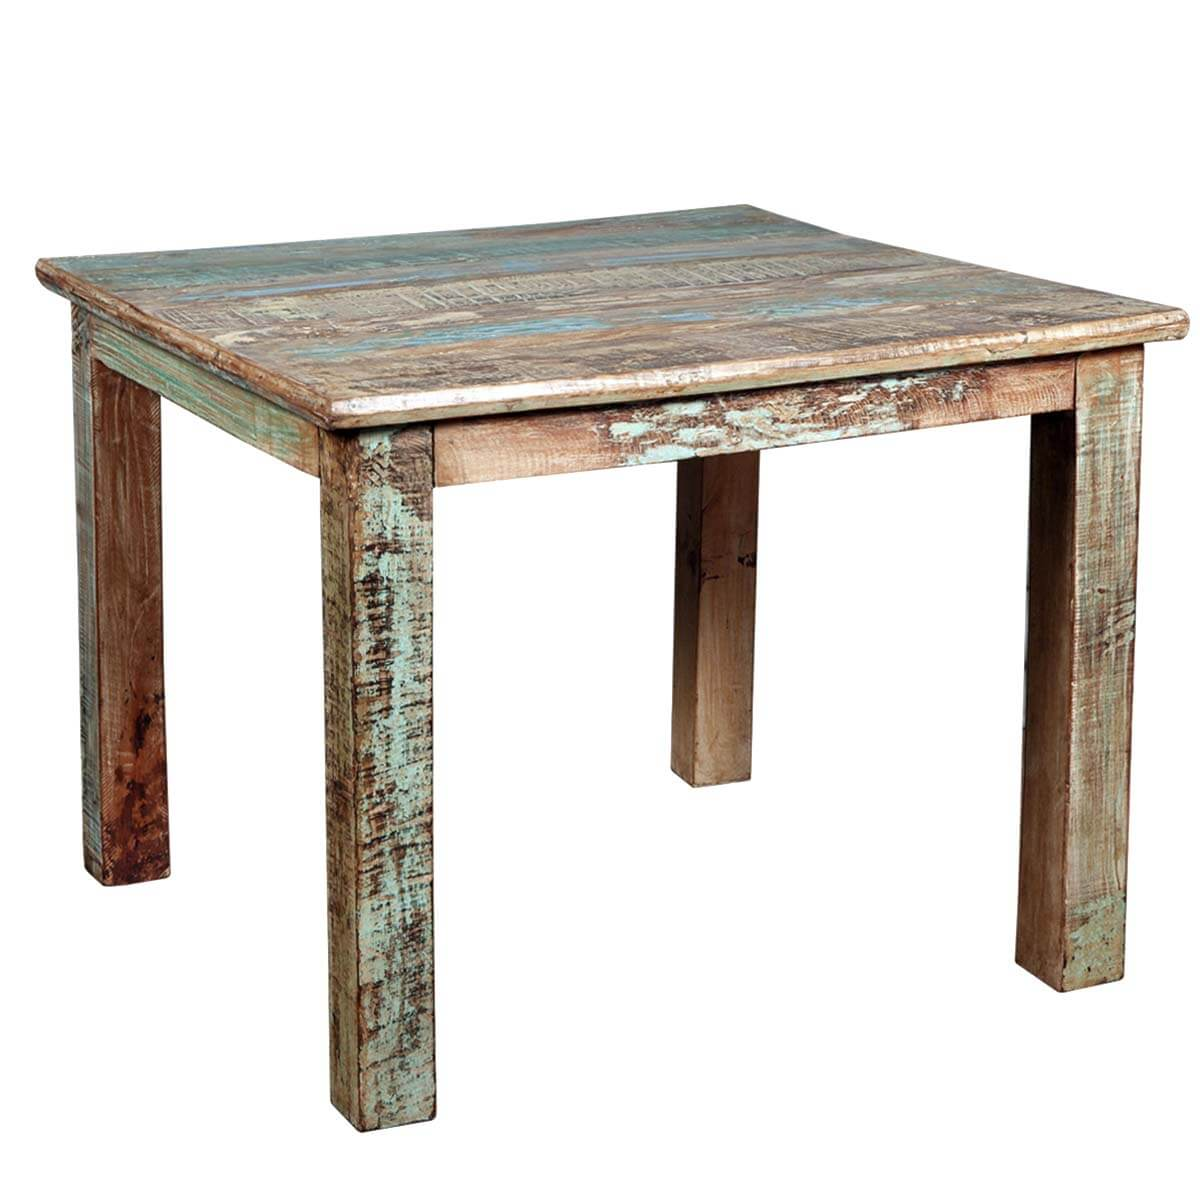 Rustic reclaimed wood distressed small kitchen dining table Small dining table